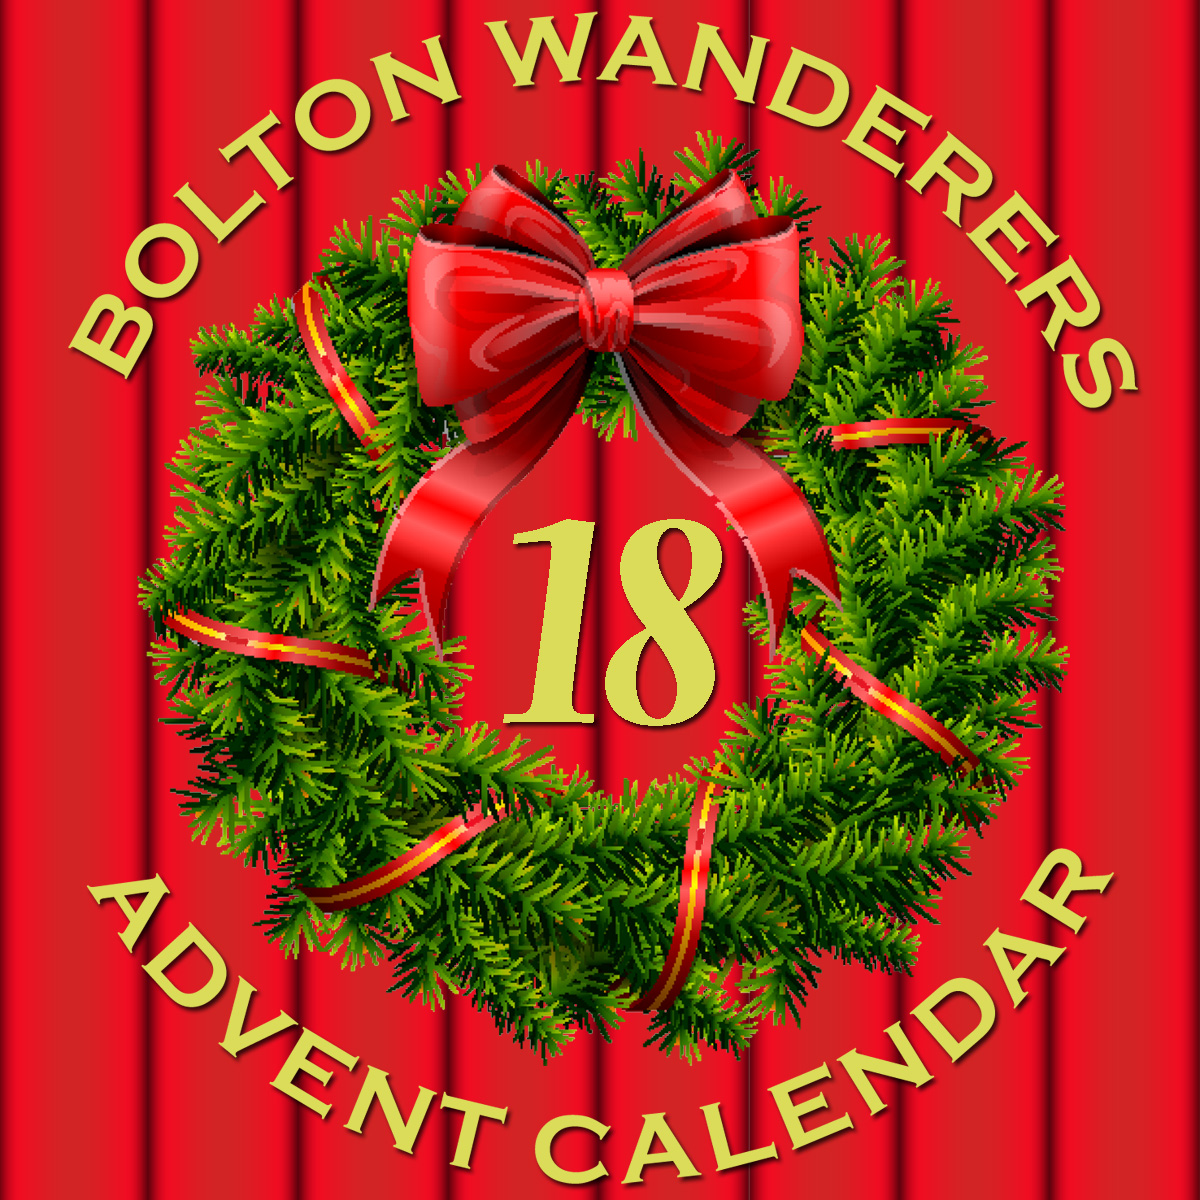 The Bolton News: advent calendar 18